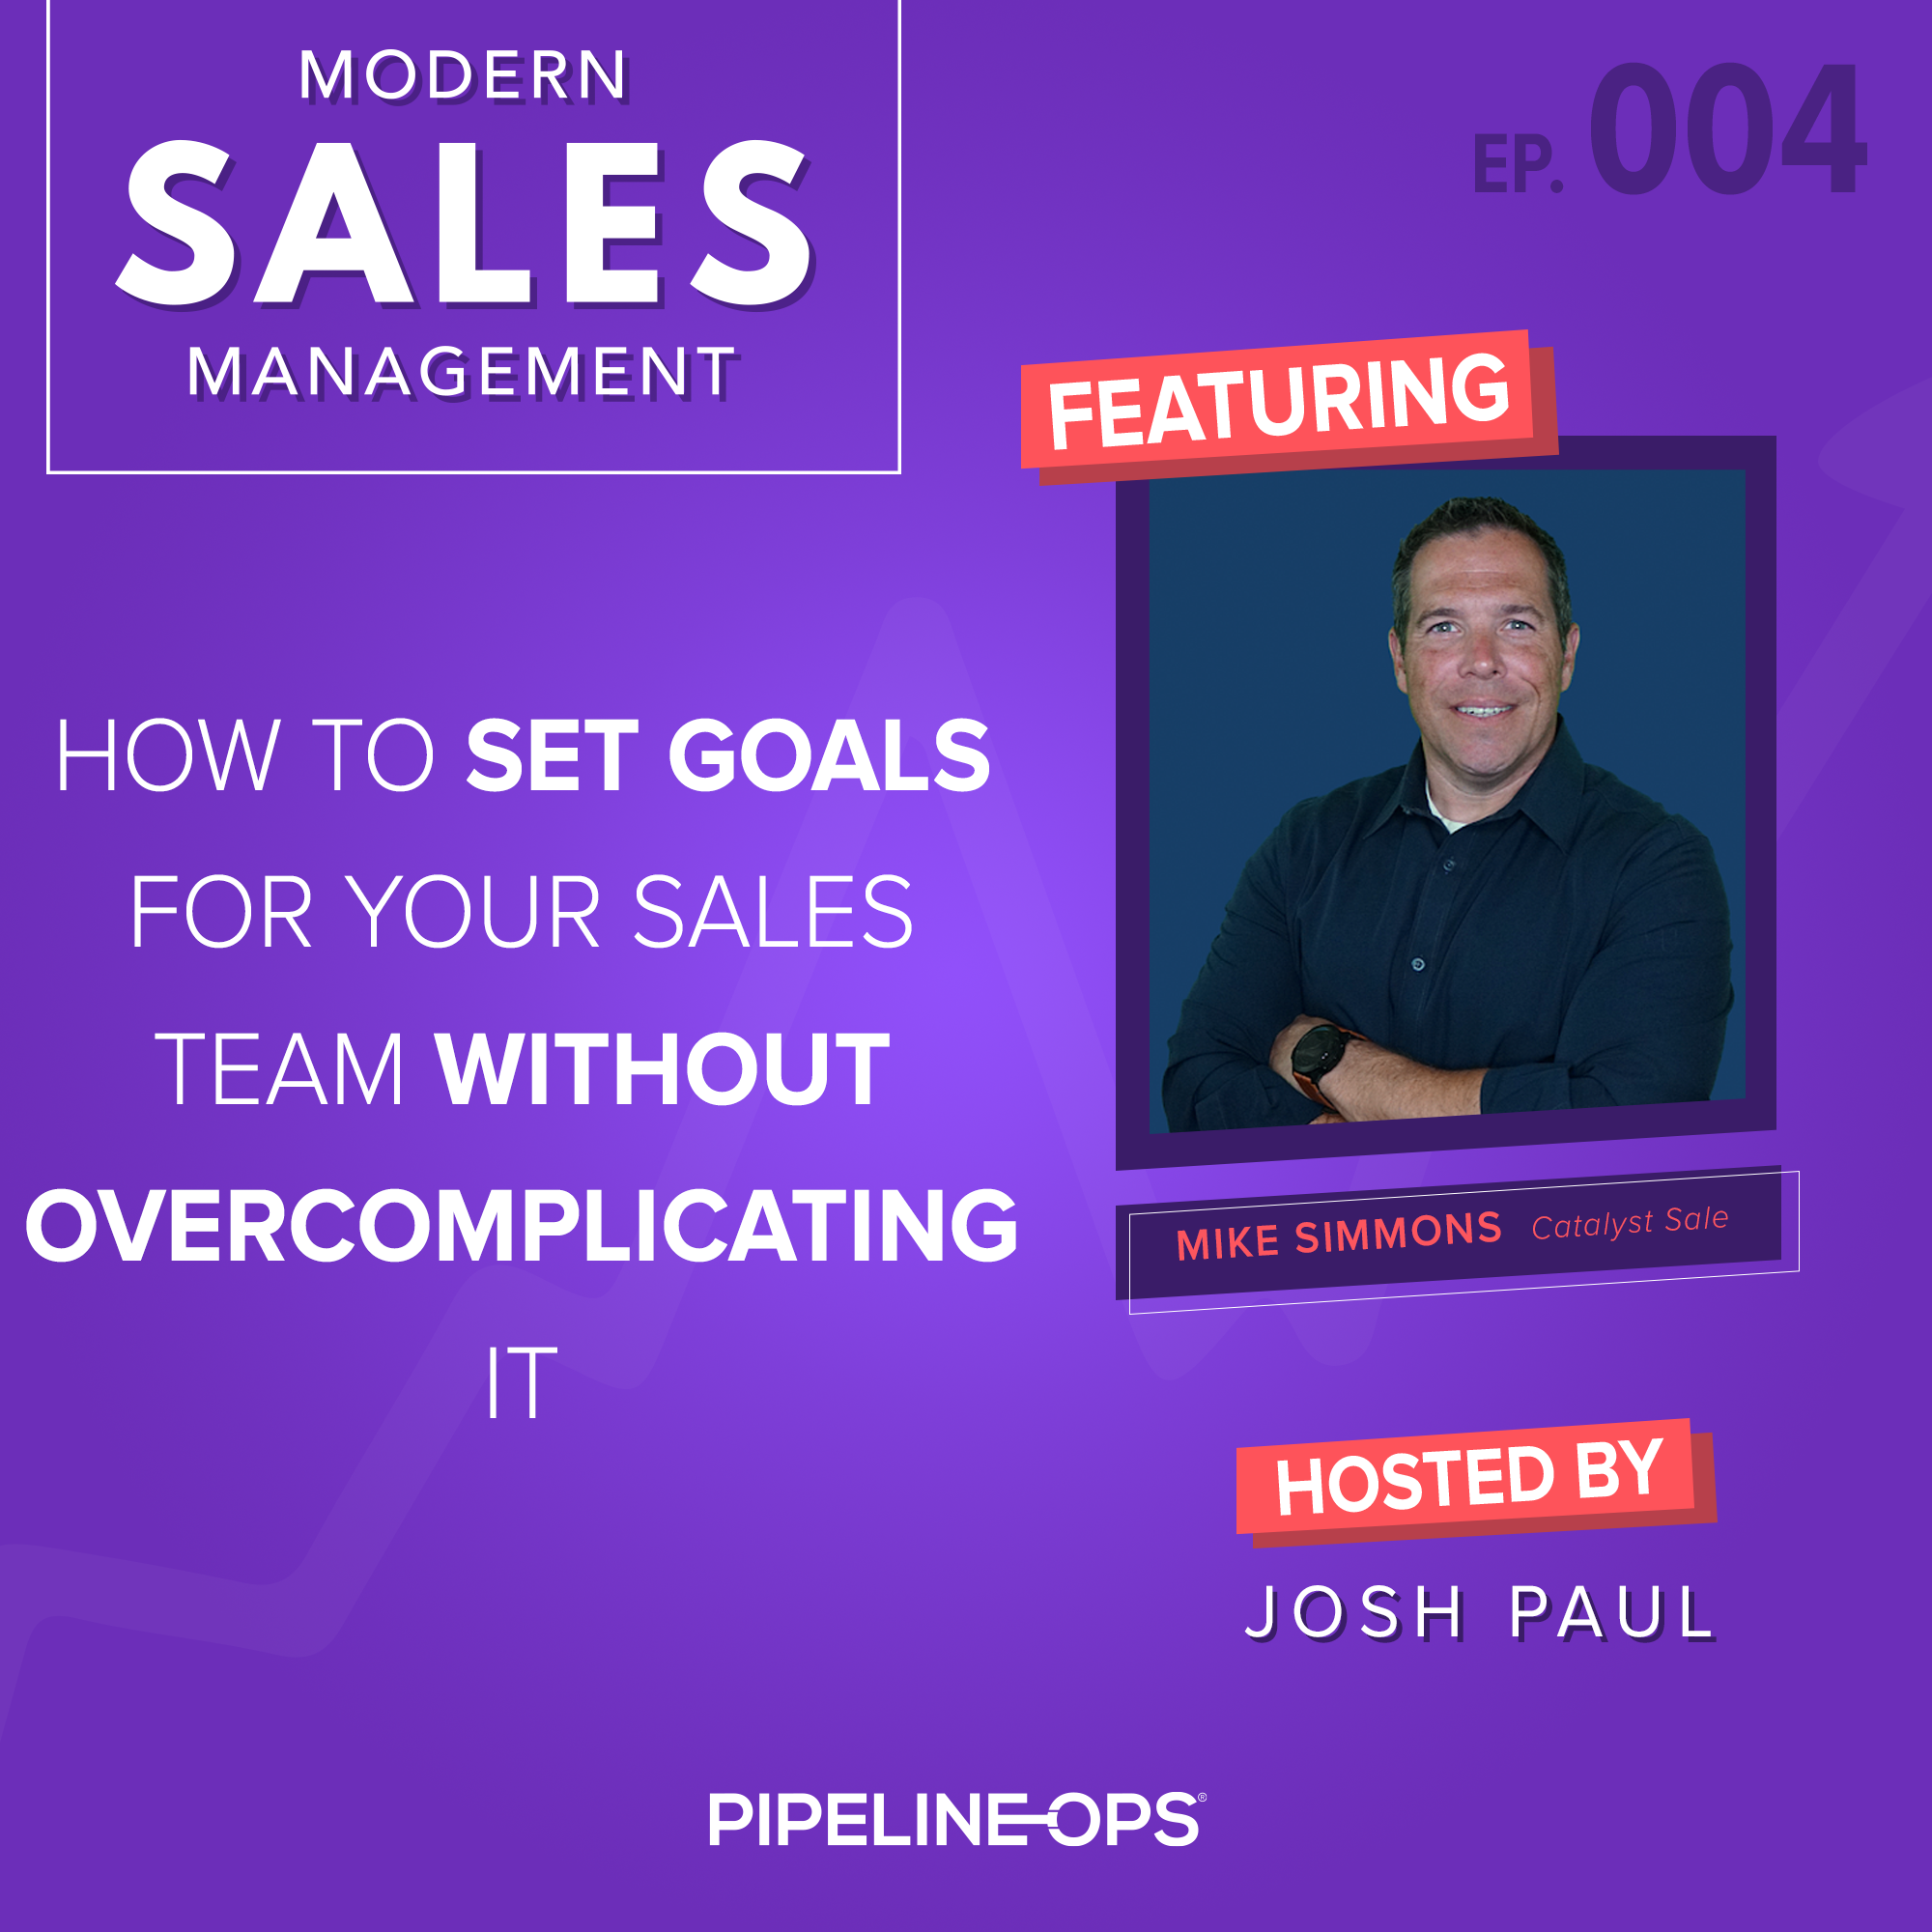 How to Set Goals for Your Sales Team With Mike Simmons